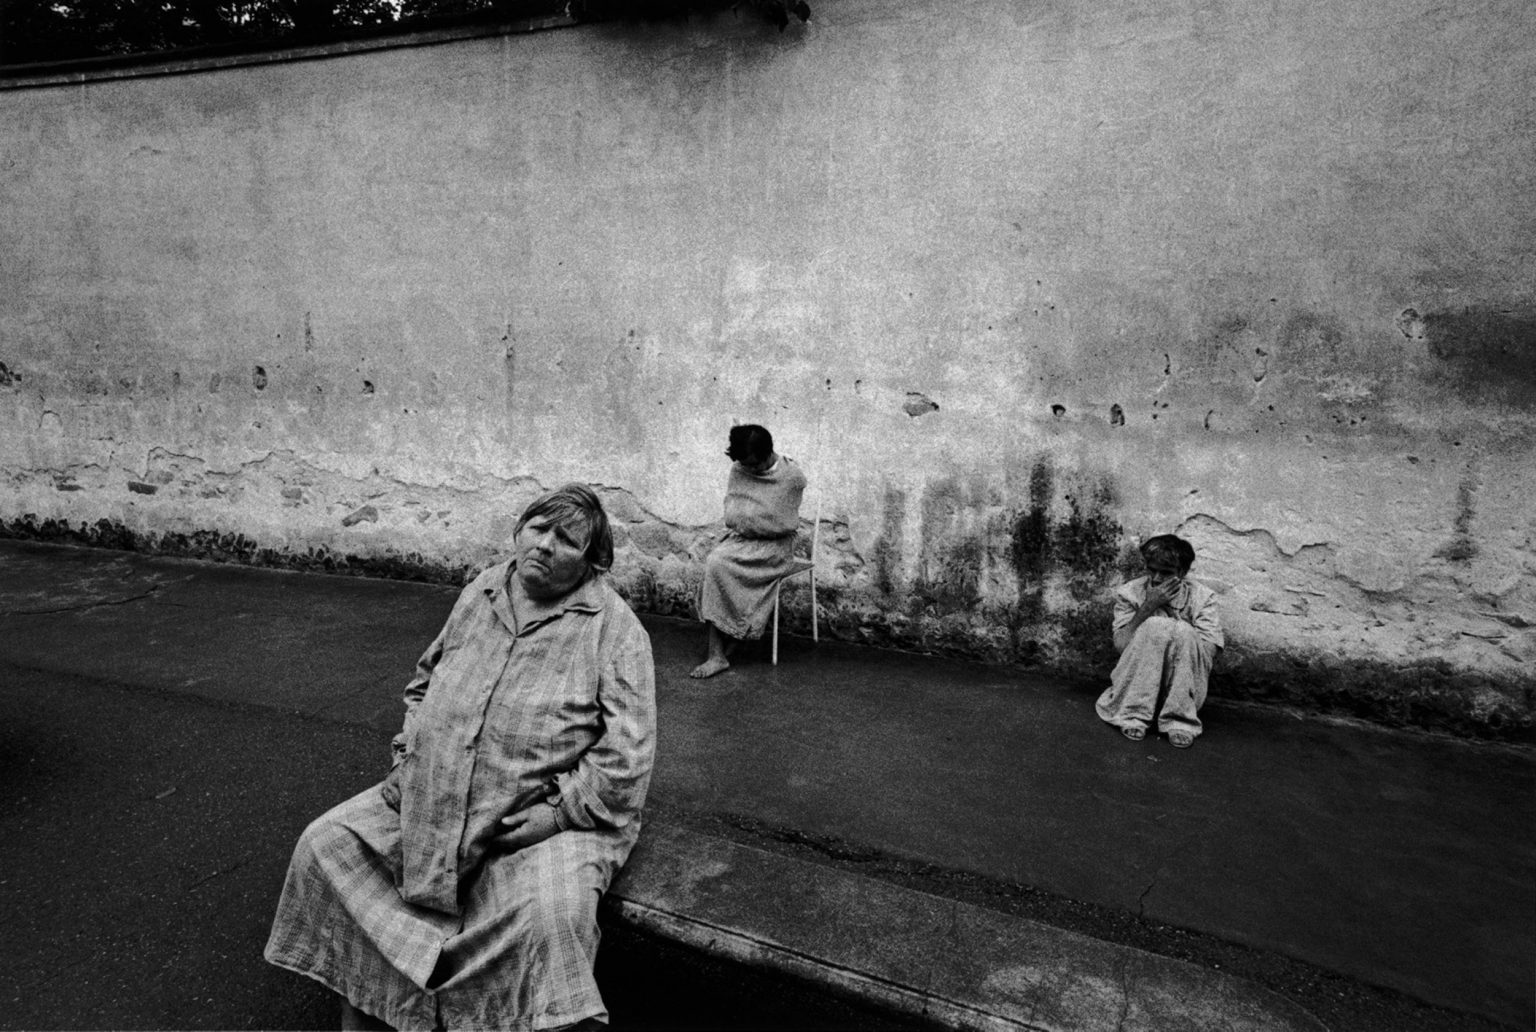 """Florence, 1968-1969 - Patients of the mental institution in the yard. ><  Firenze, 1968-1969 - Alcune pazienti dell'istituto psichiatrico nel cortile.<p><span style=""""color: #ff0000""""><strong>*** SPECIAL   FEE   APPLIES ***</strong></span></p>"""